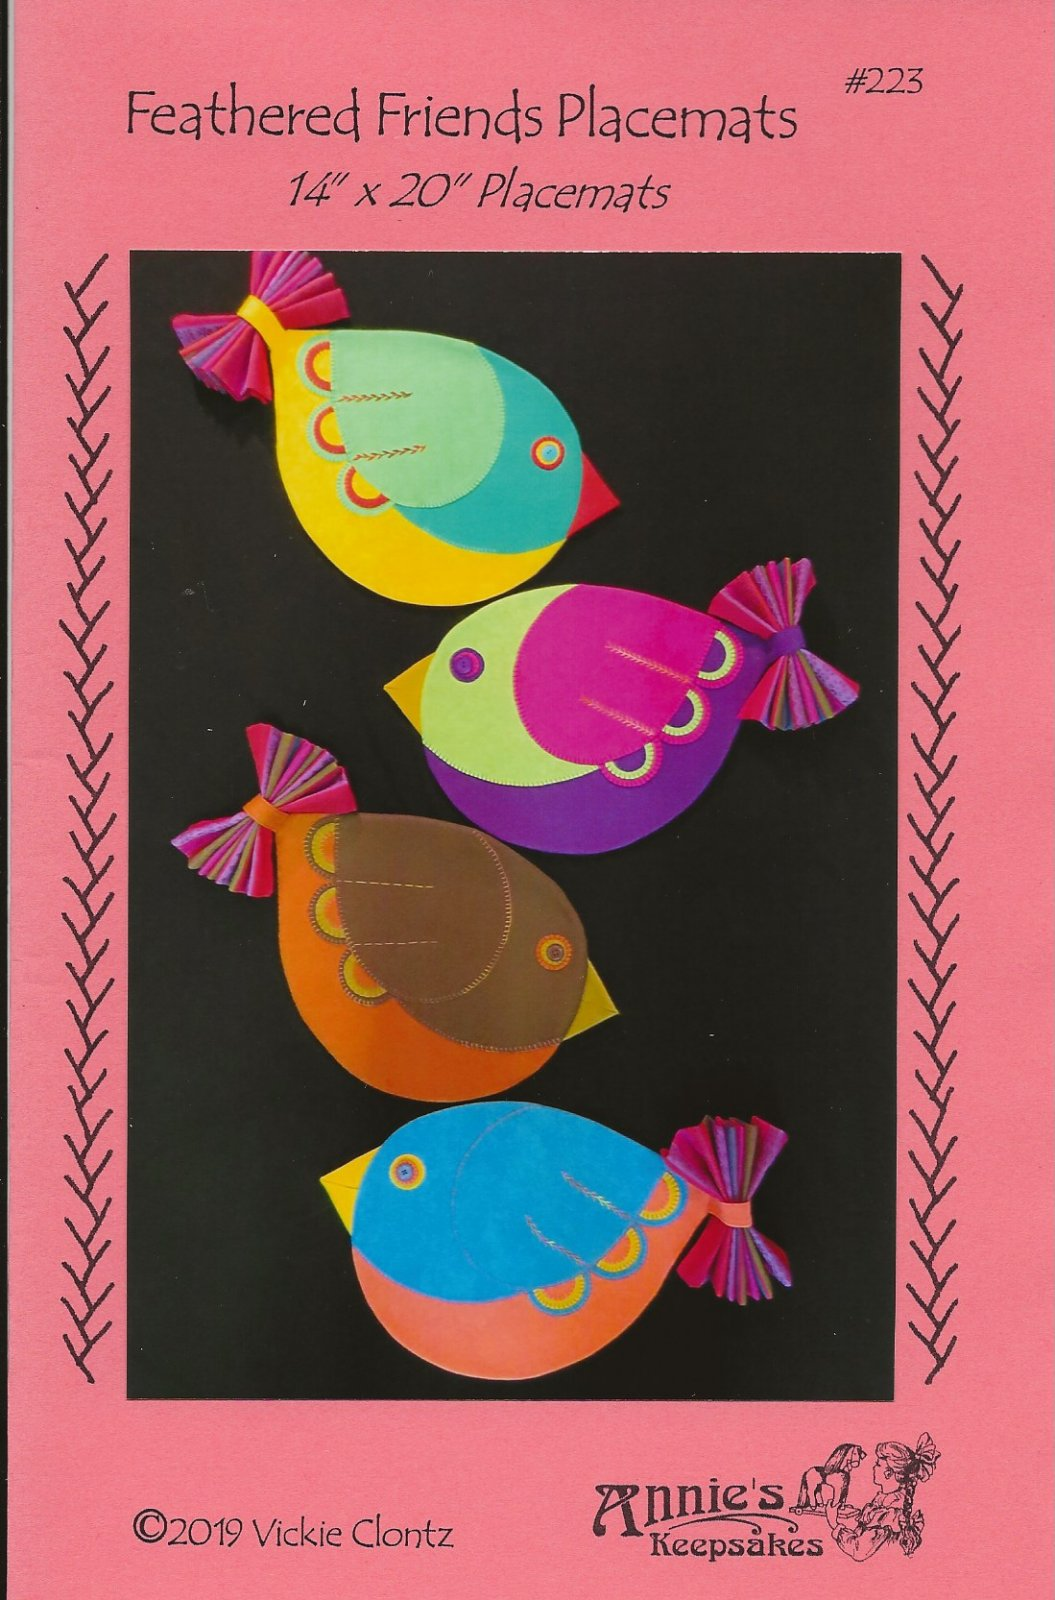 Feathered Friends Placemats